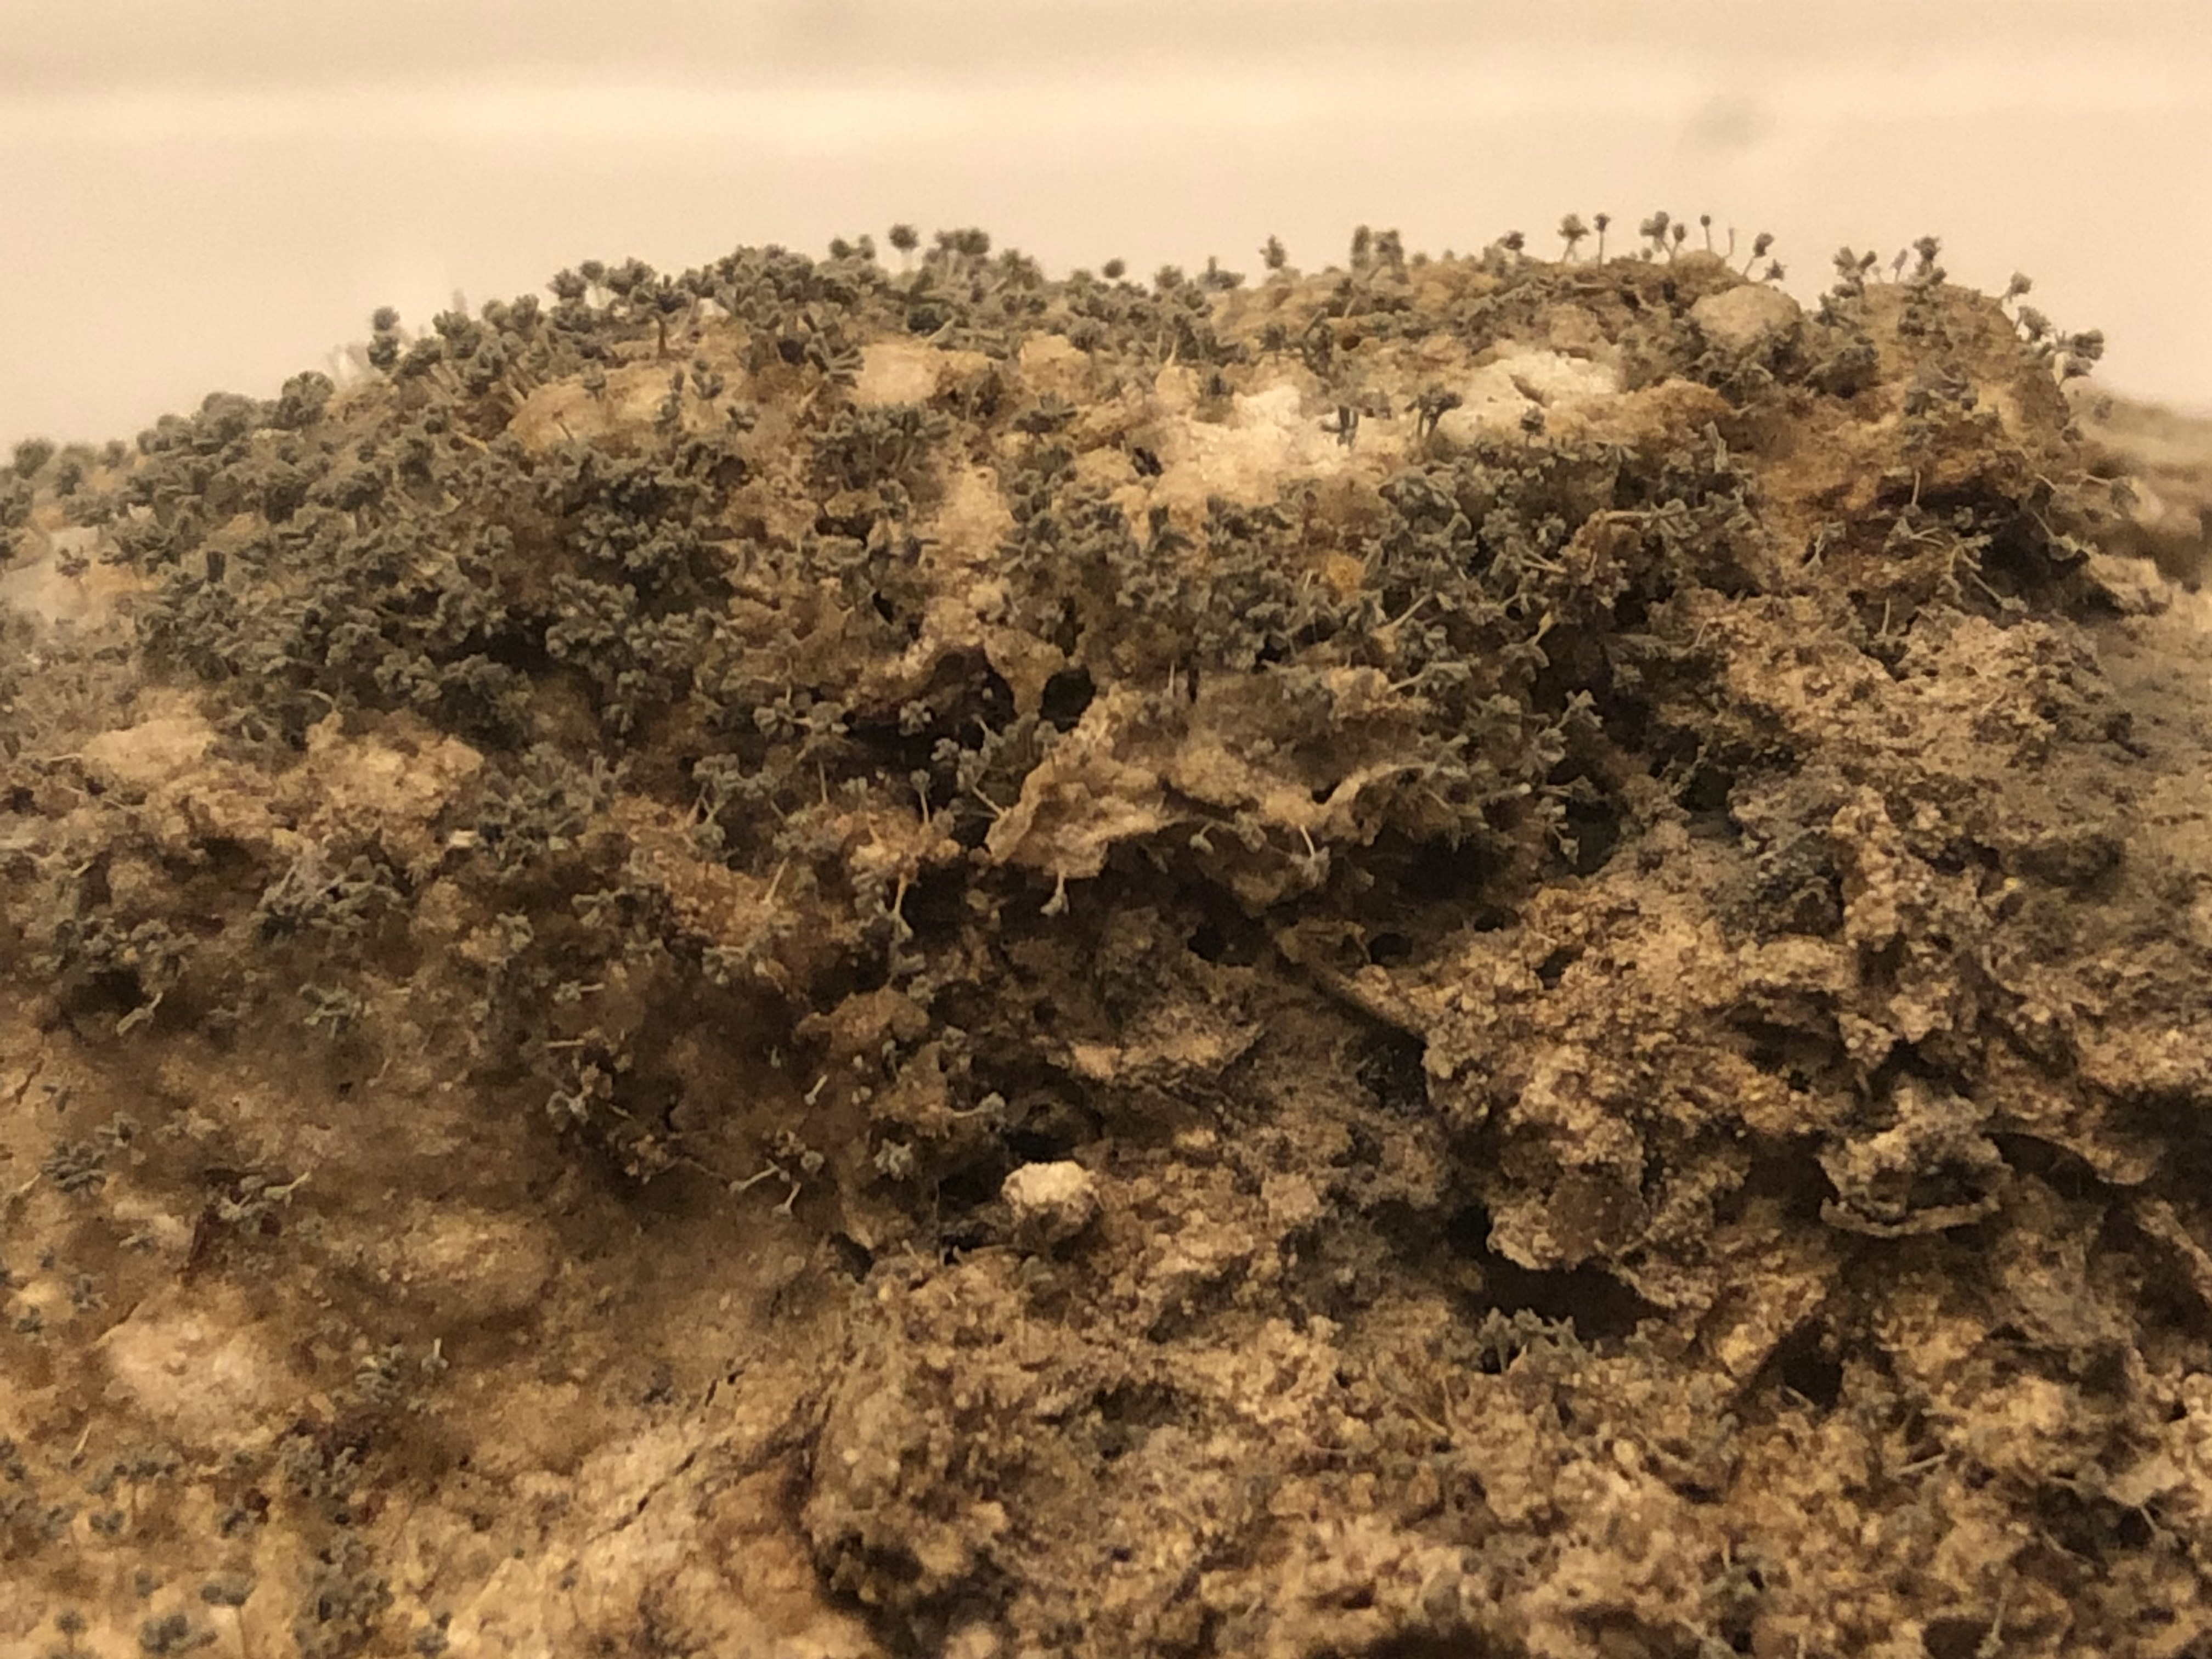 Toxic fatberg in museum quarantrine - watch it here